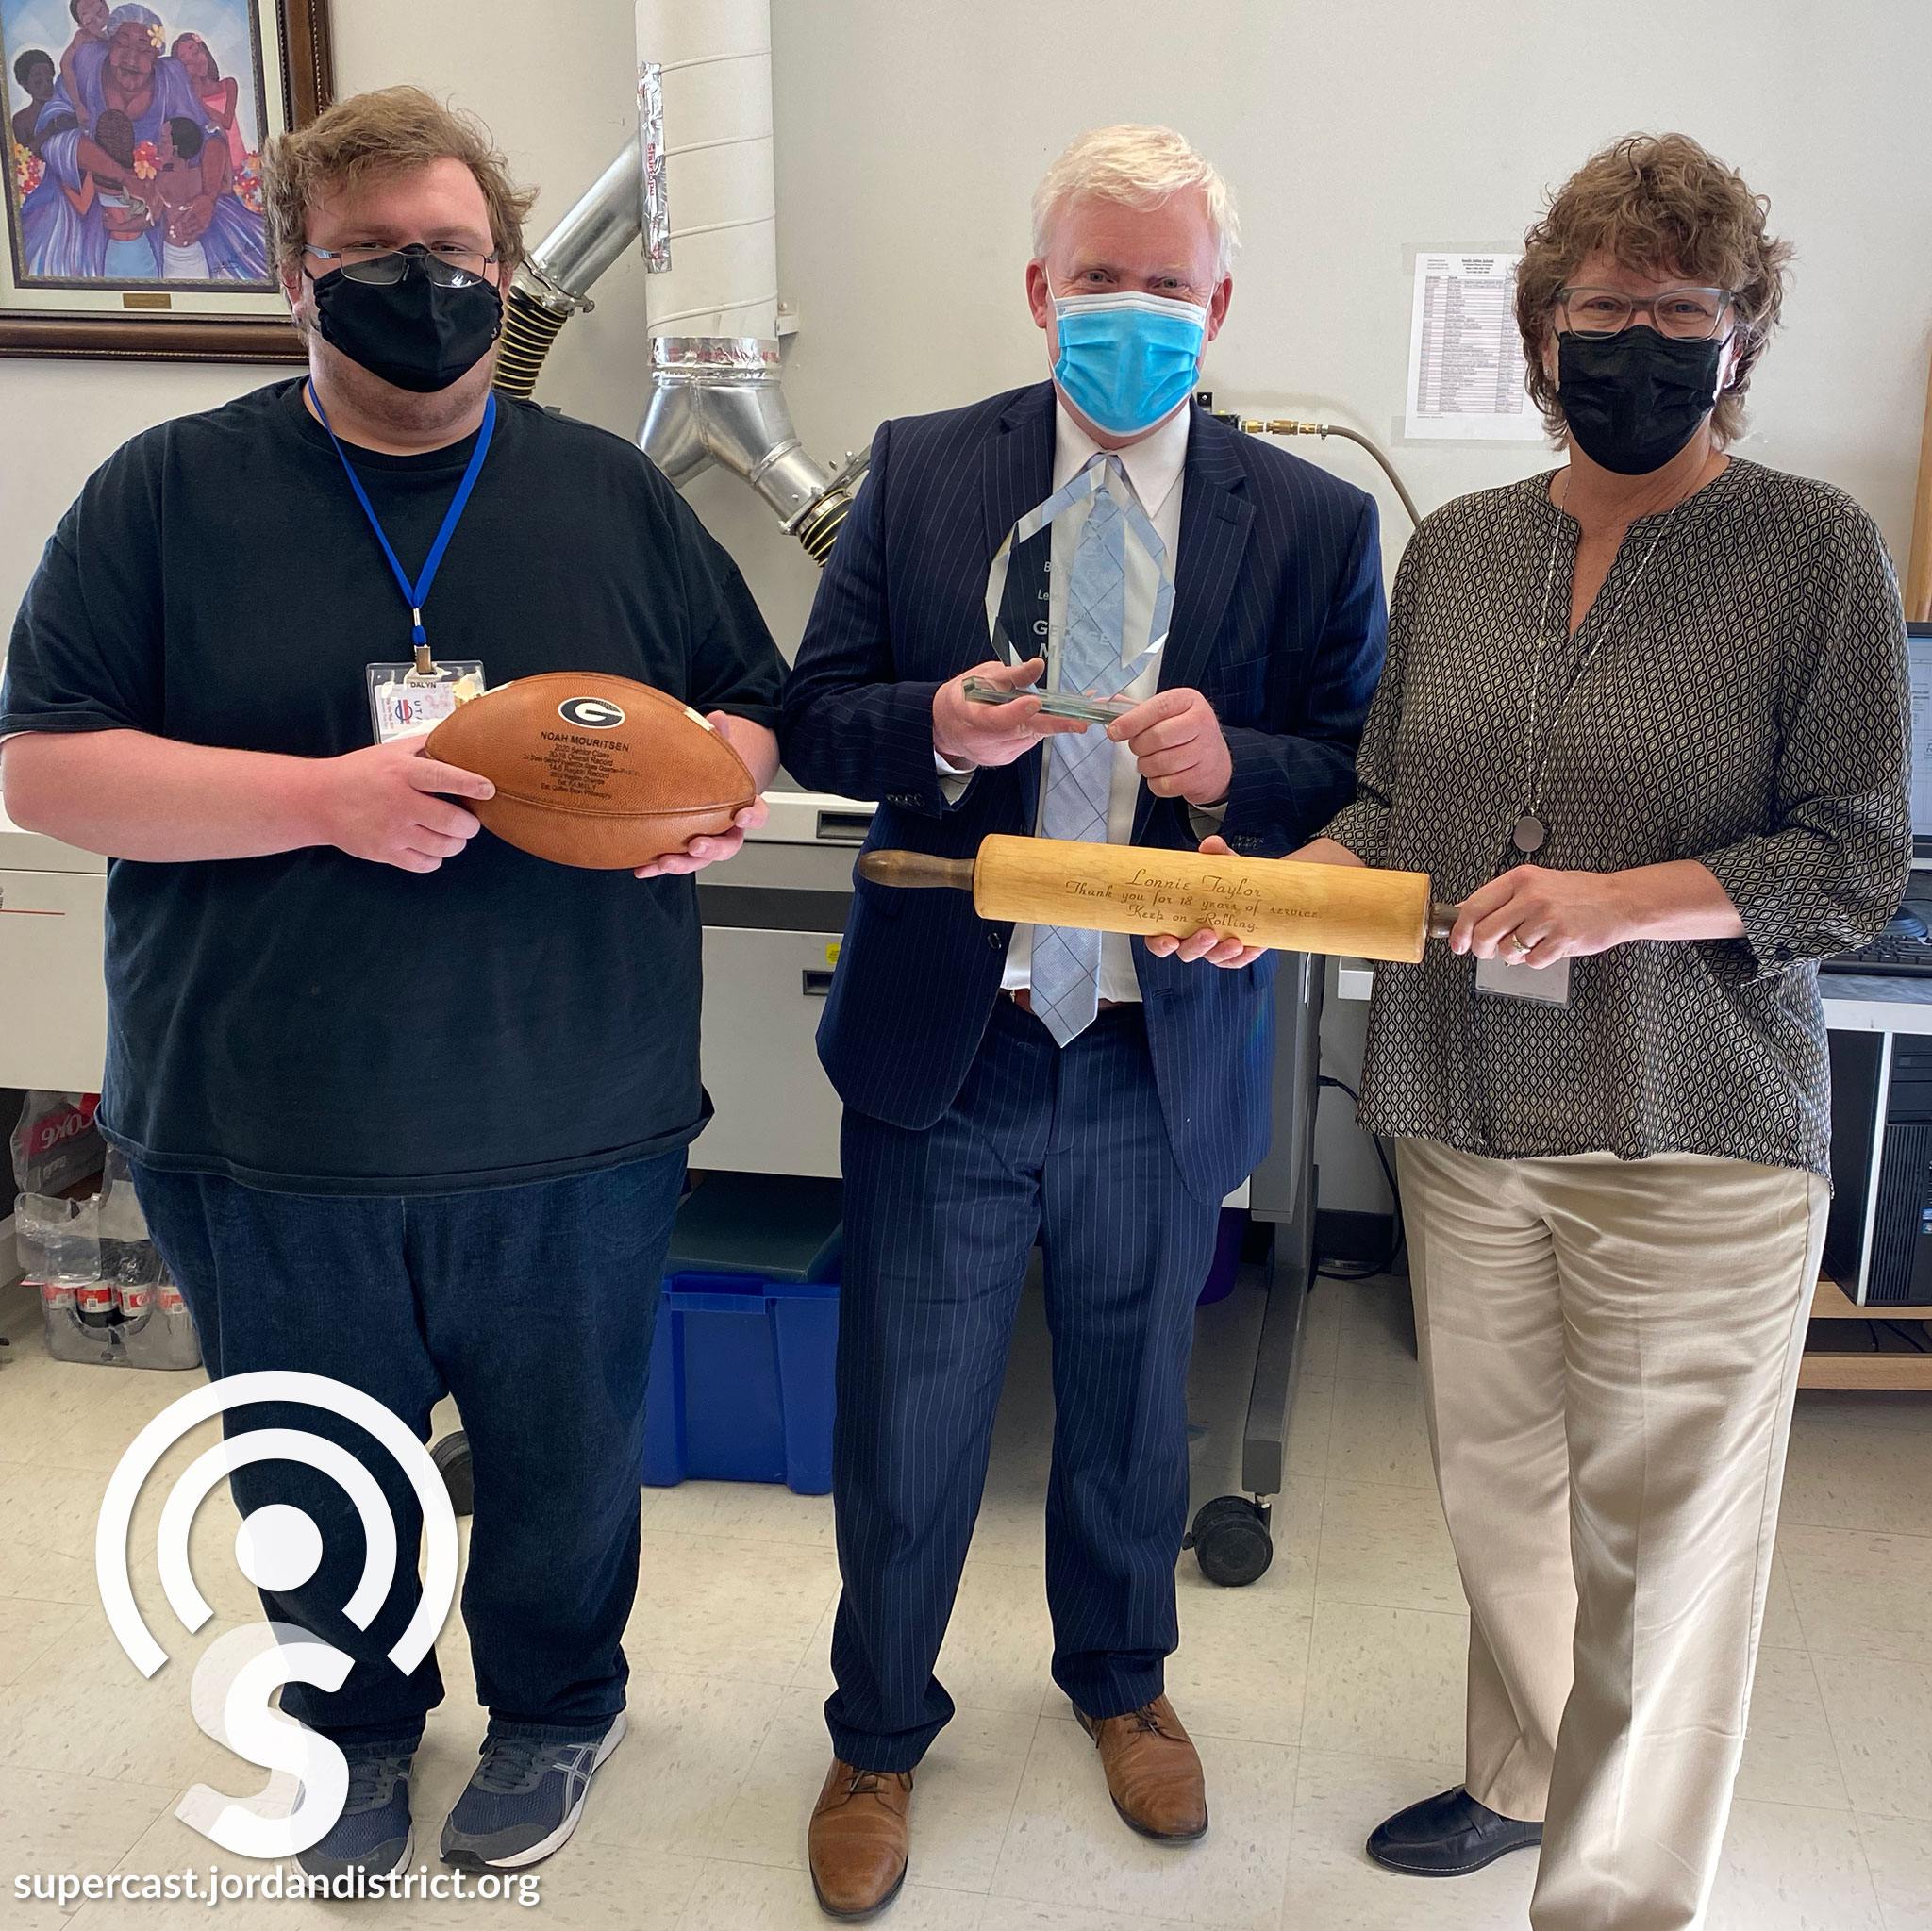 Superintendend & SVS Staff Show off some engraving work